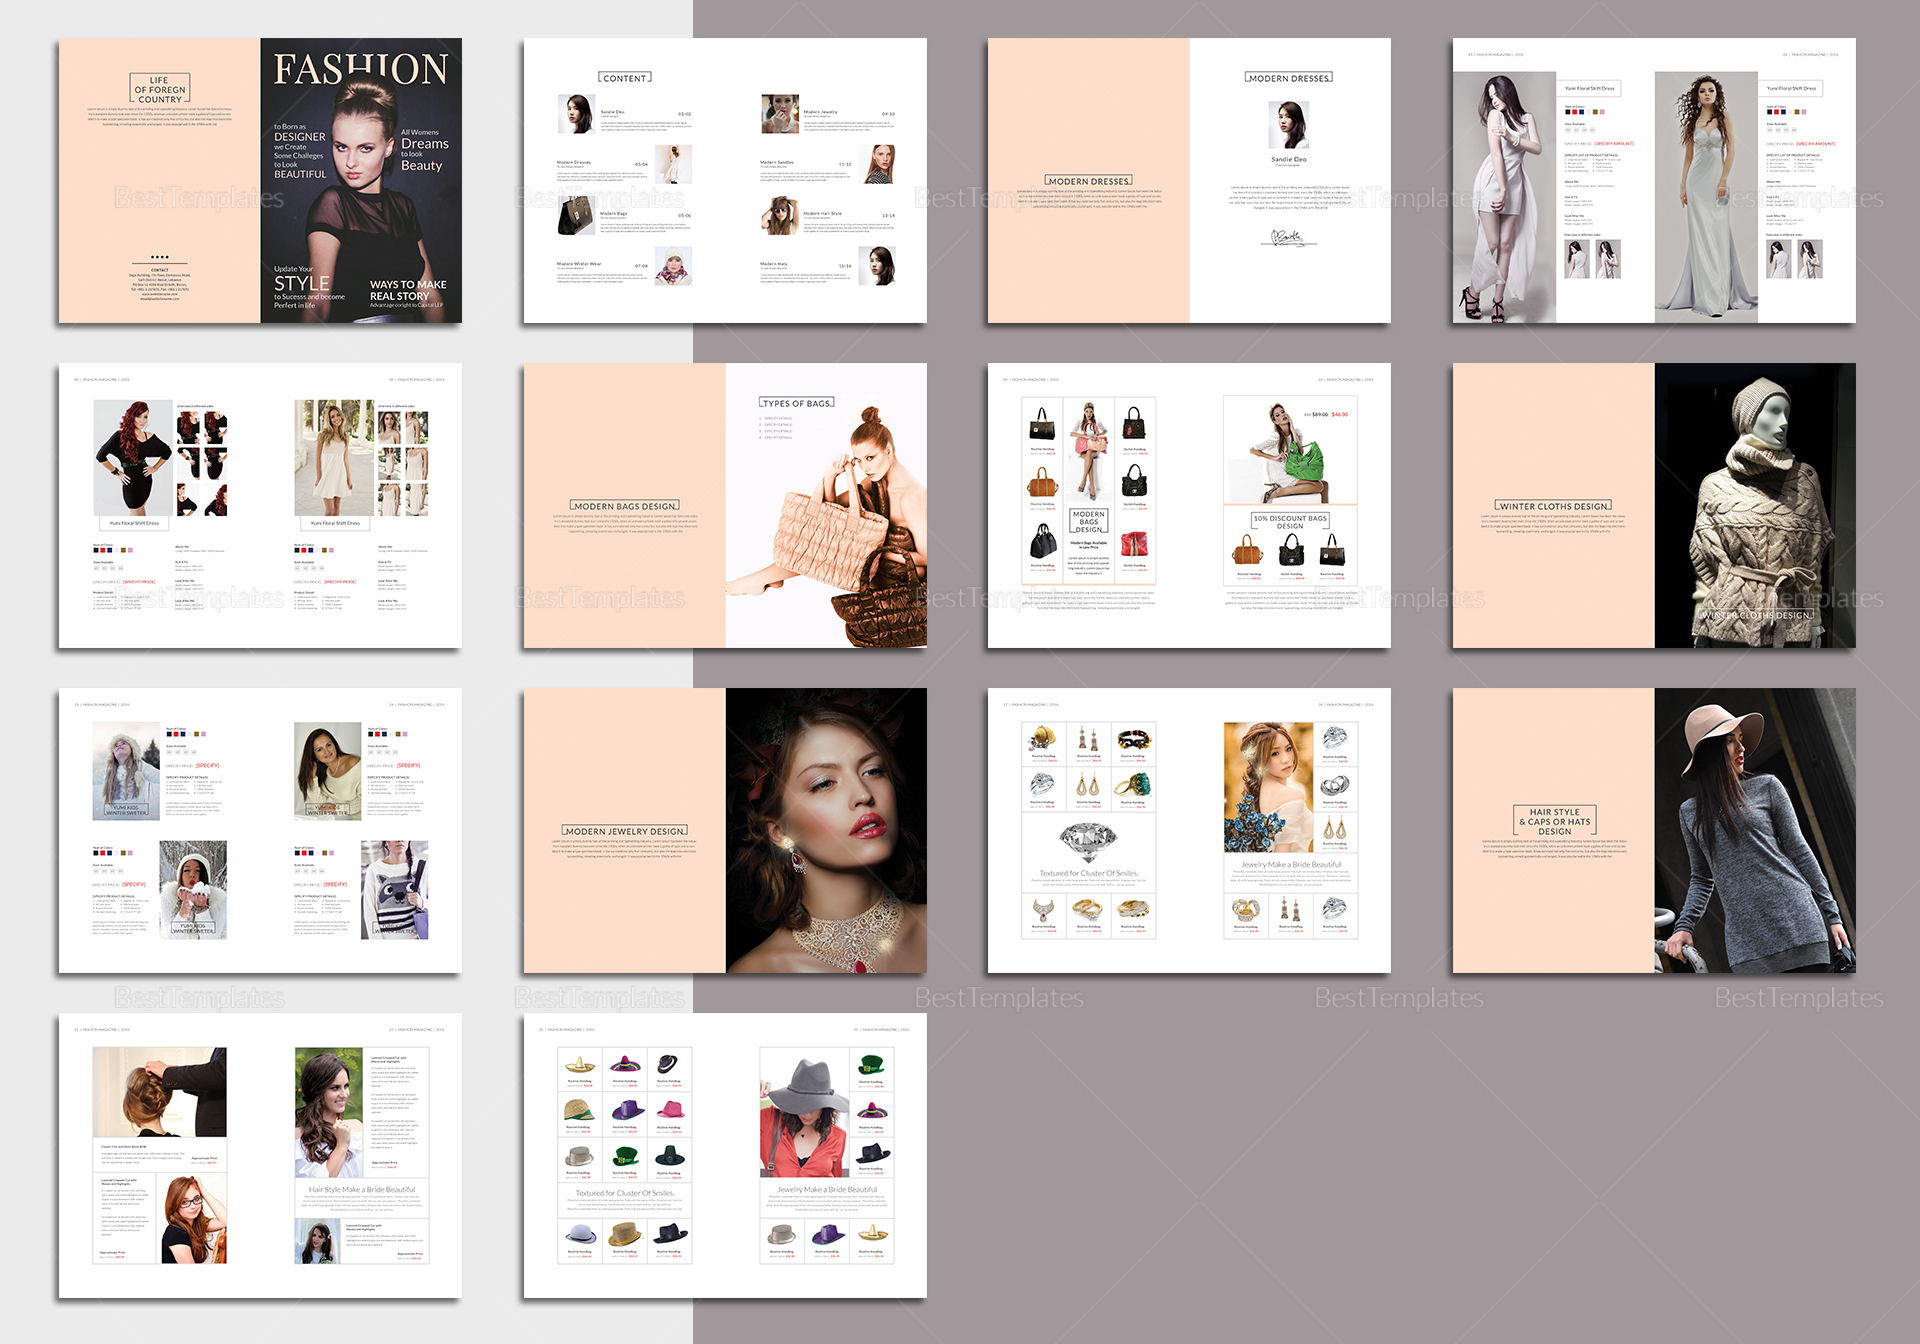 28 Pages Fashion Magazine Template In Psd Word Publisher Indesign